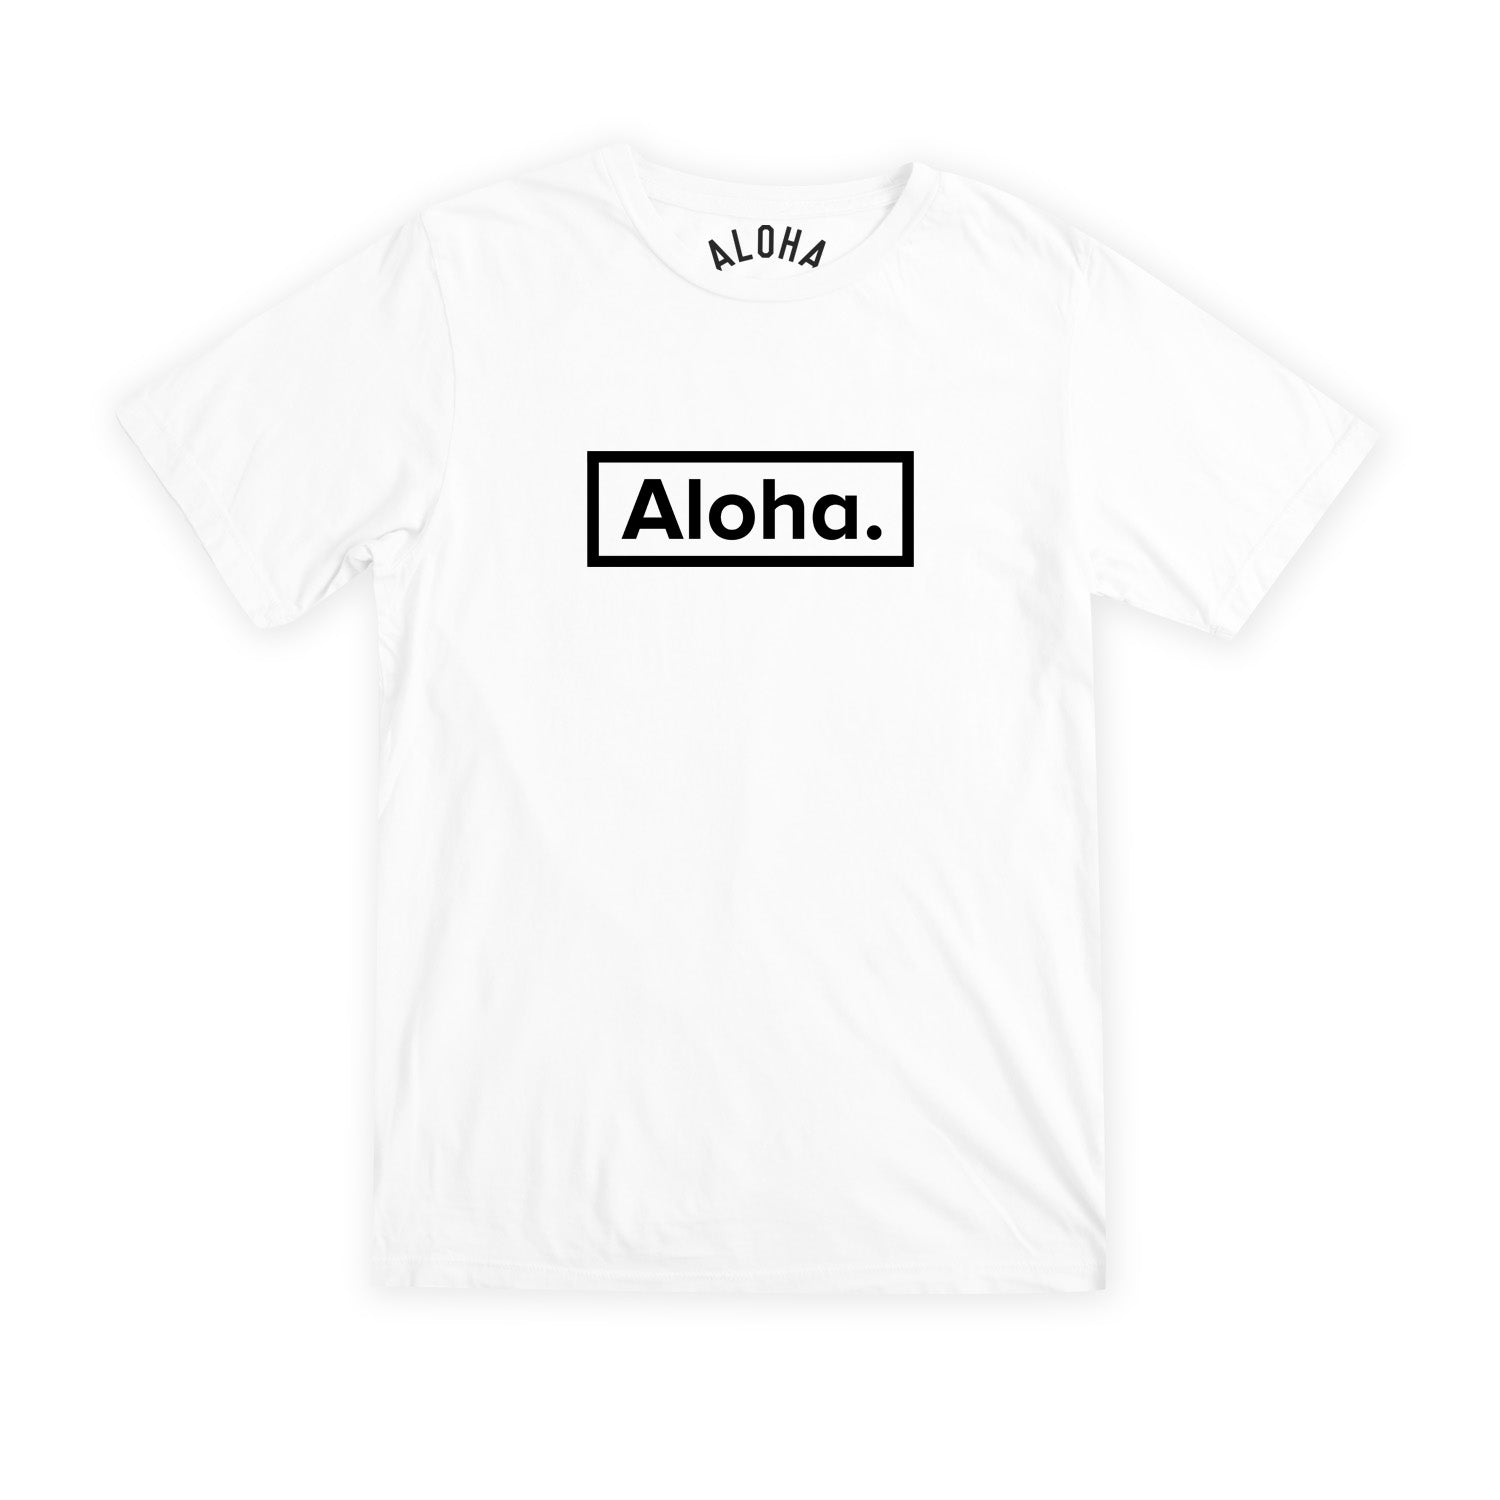 Aloha Beach Club - Nada Tee White - Aloha Beach Club